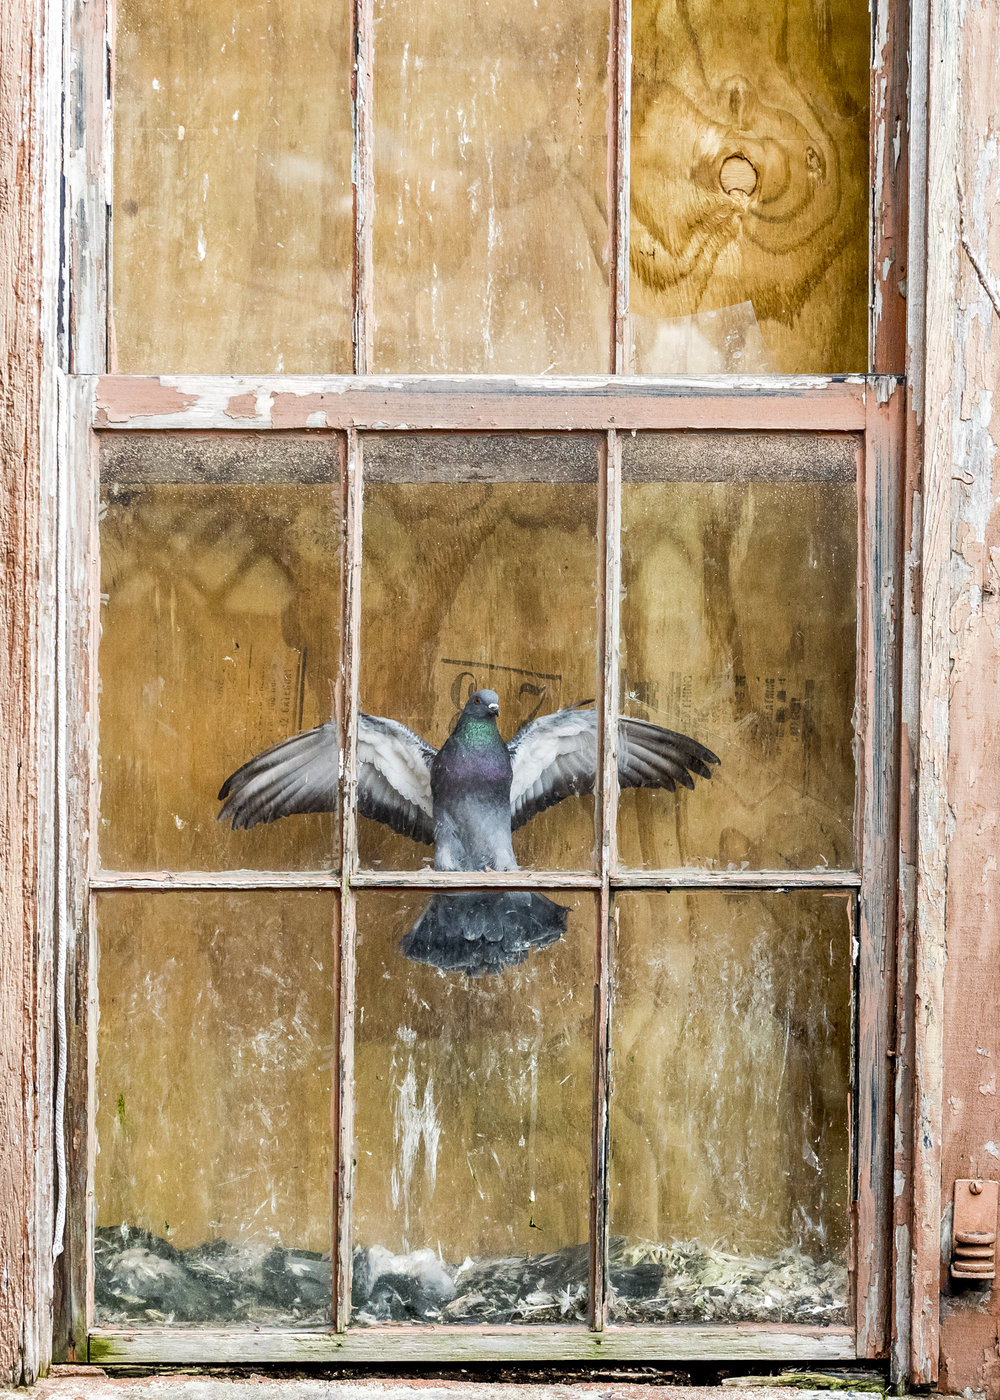 A pigeon remains trapped in a third story window in a cramped alleyway in Pomeroy, Ohio. It appears motionless as it frantically hovers above the corpses of other birds hoping to find the way out.